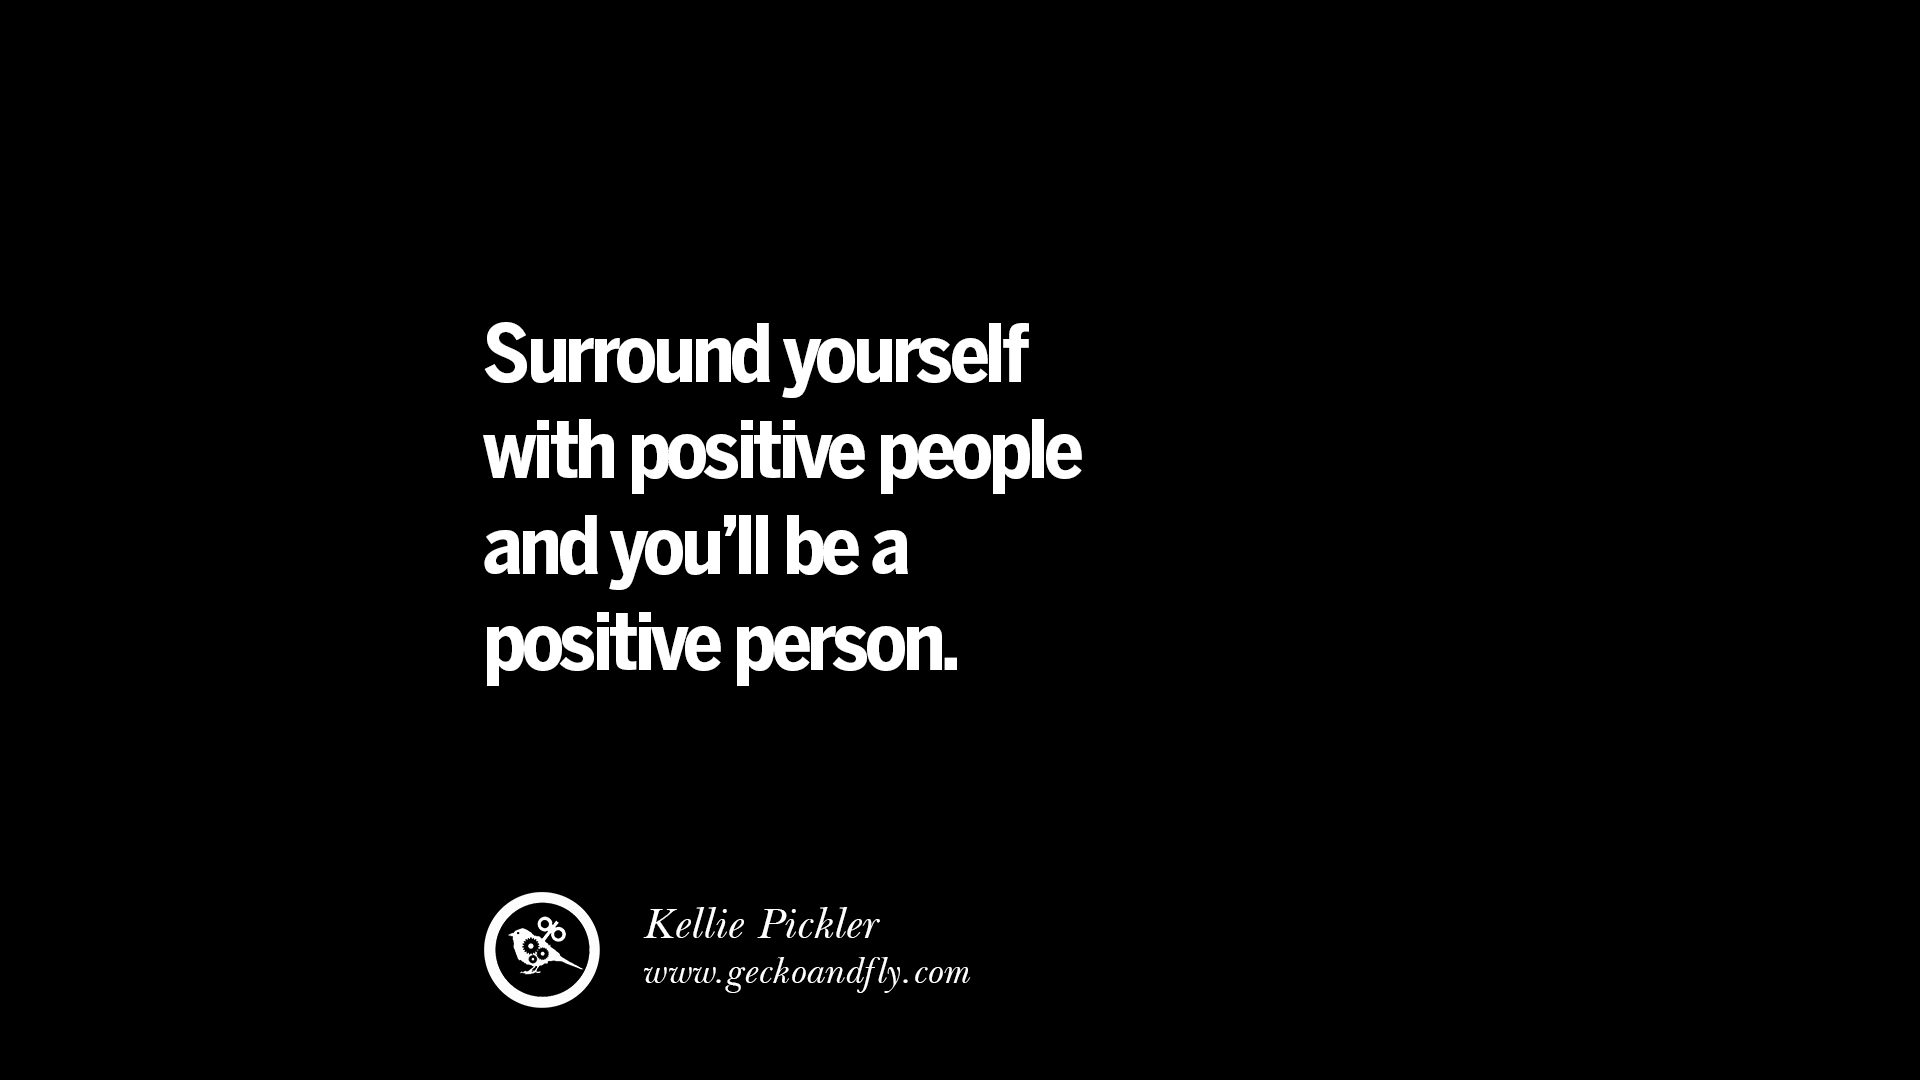 inspirational quotes on positive thinking power and thoughts  surround yourself positive people and you ll be a positive person kellie